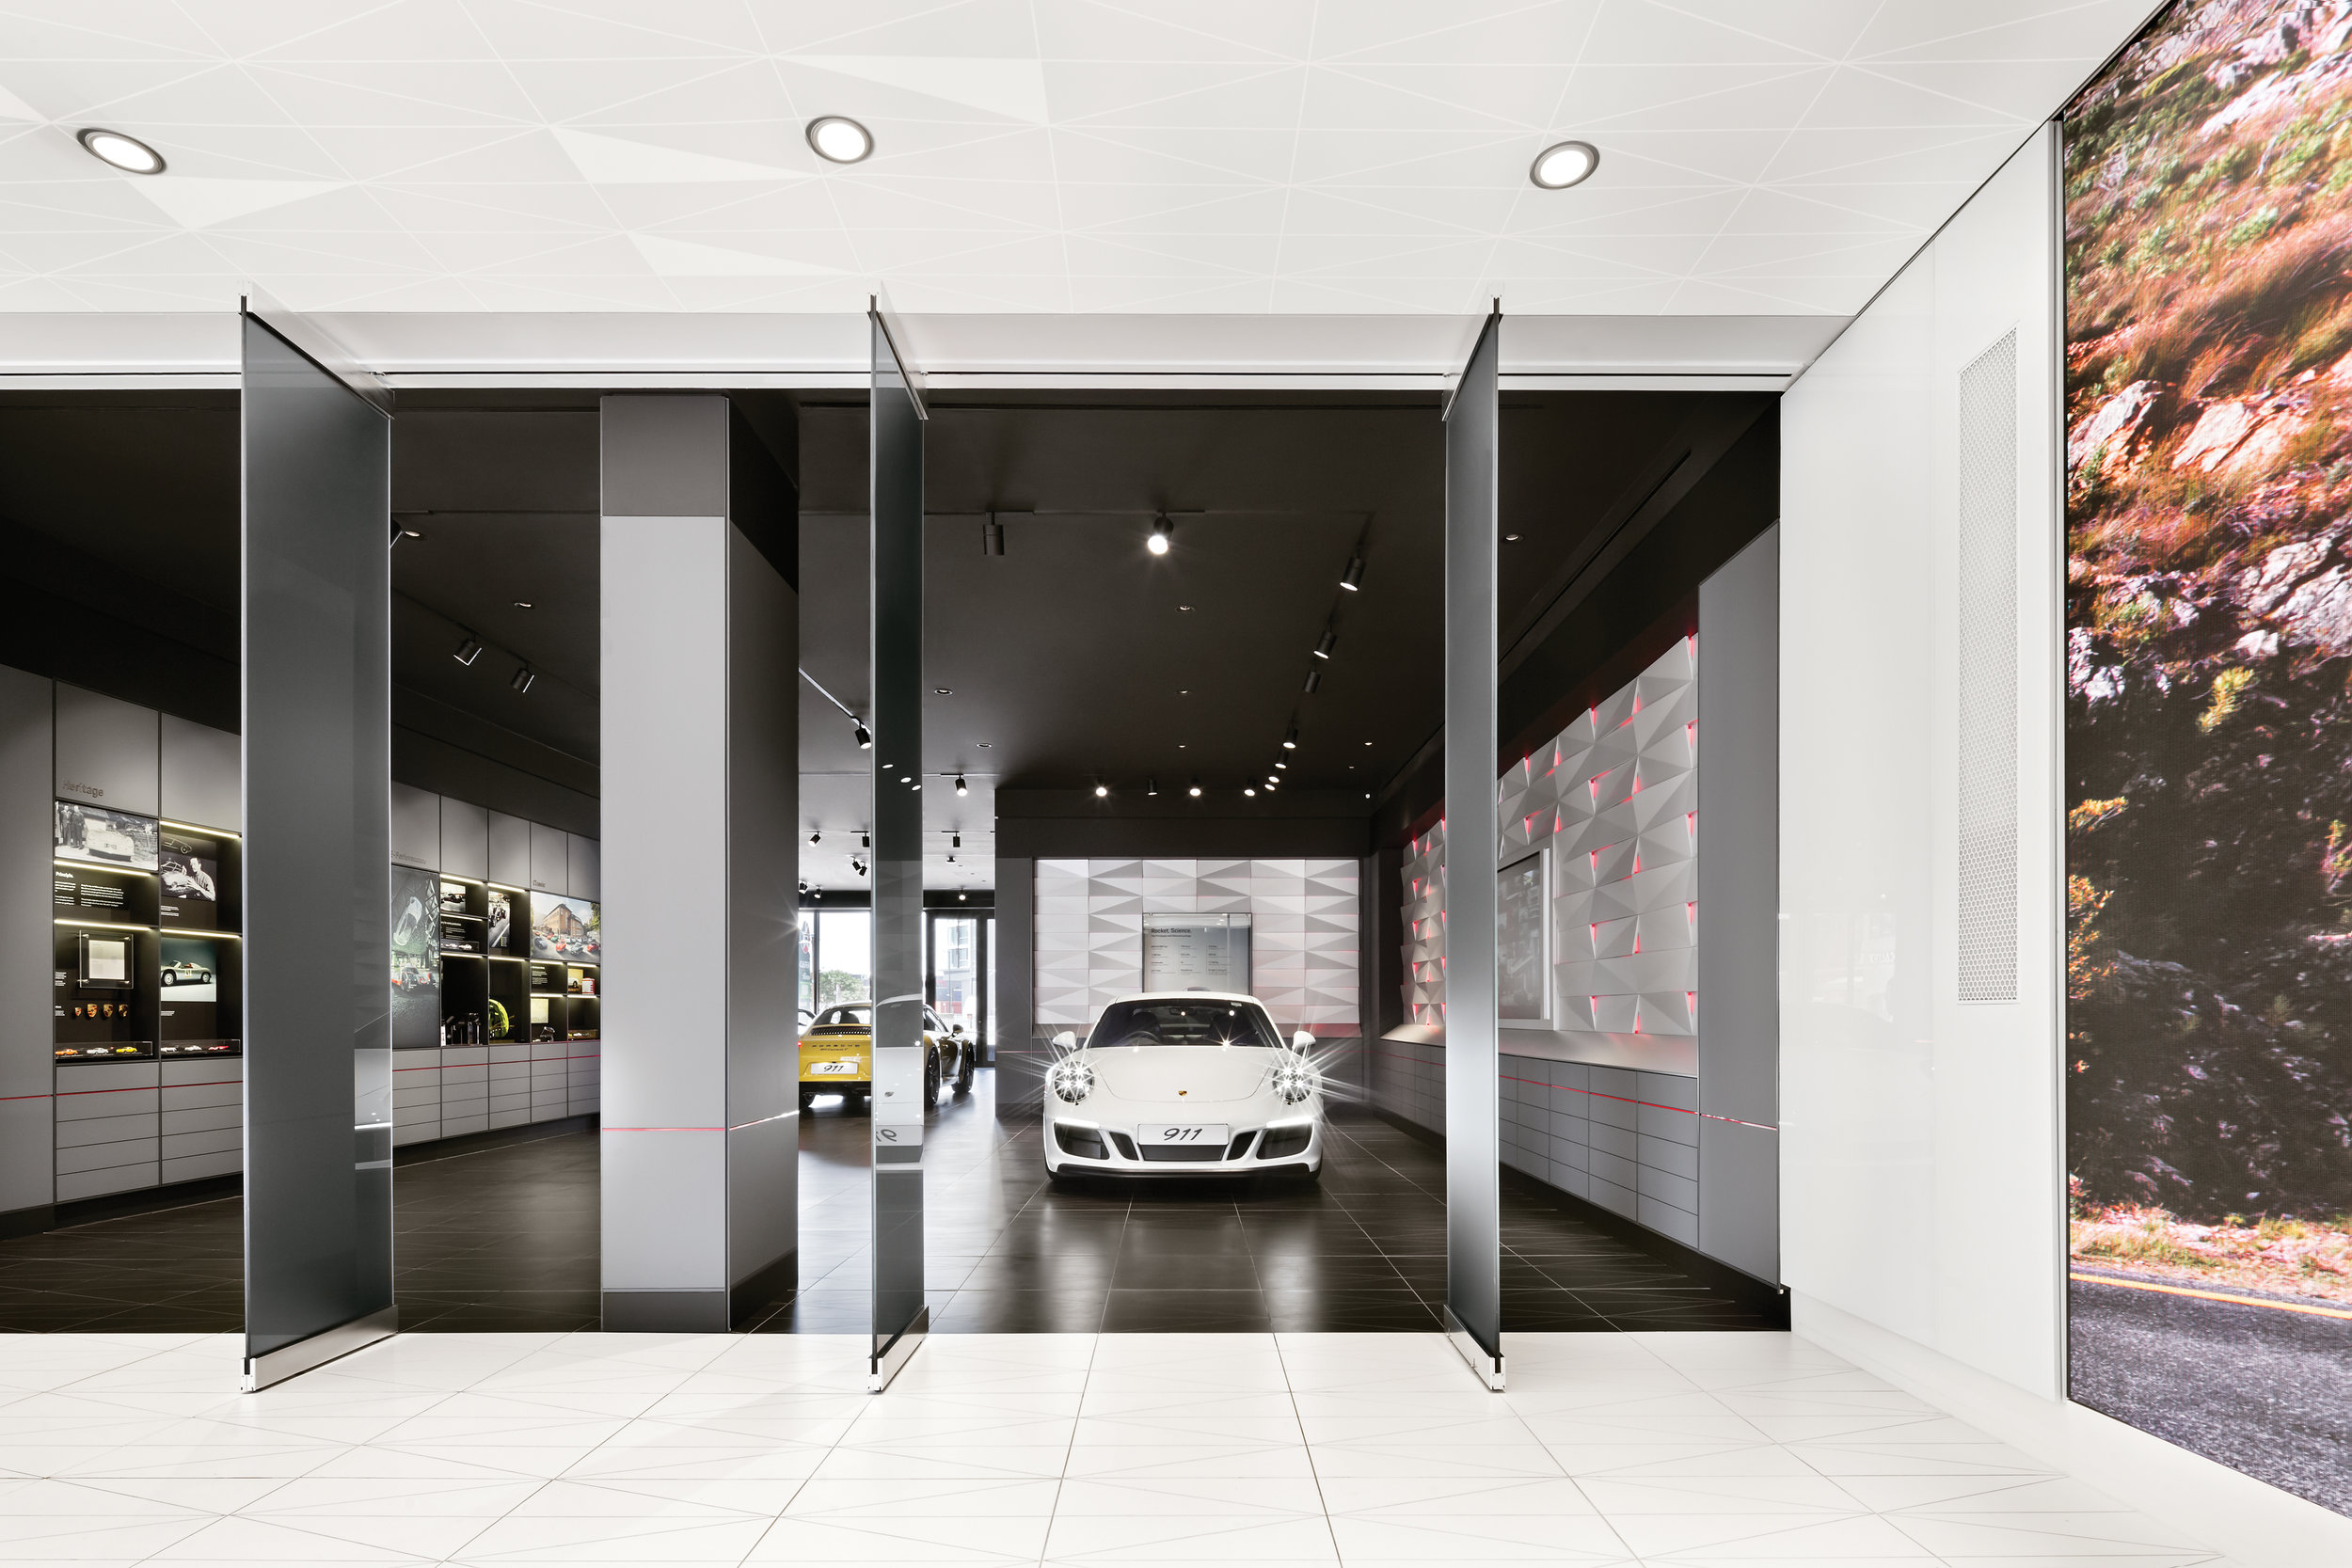 porsche-studio_retail-interior-design_coordination-berlin_19a.jpg